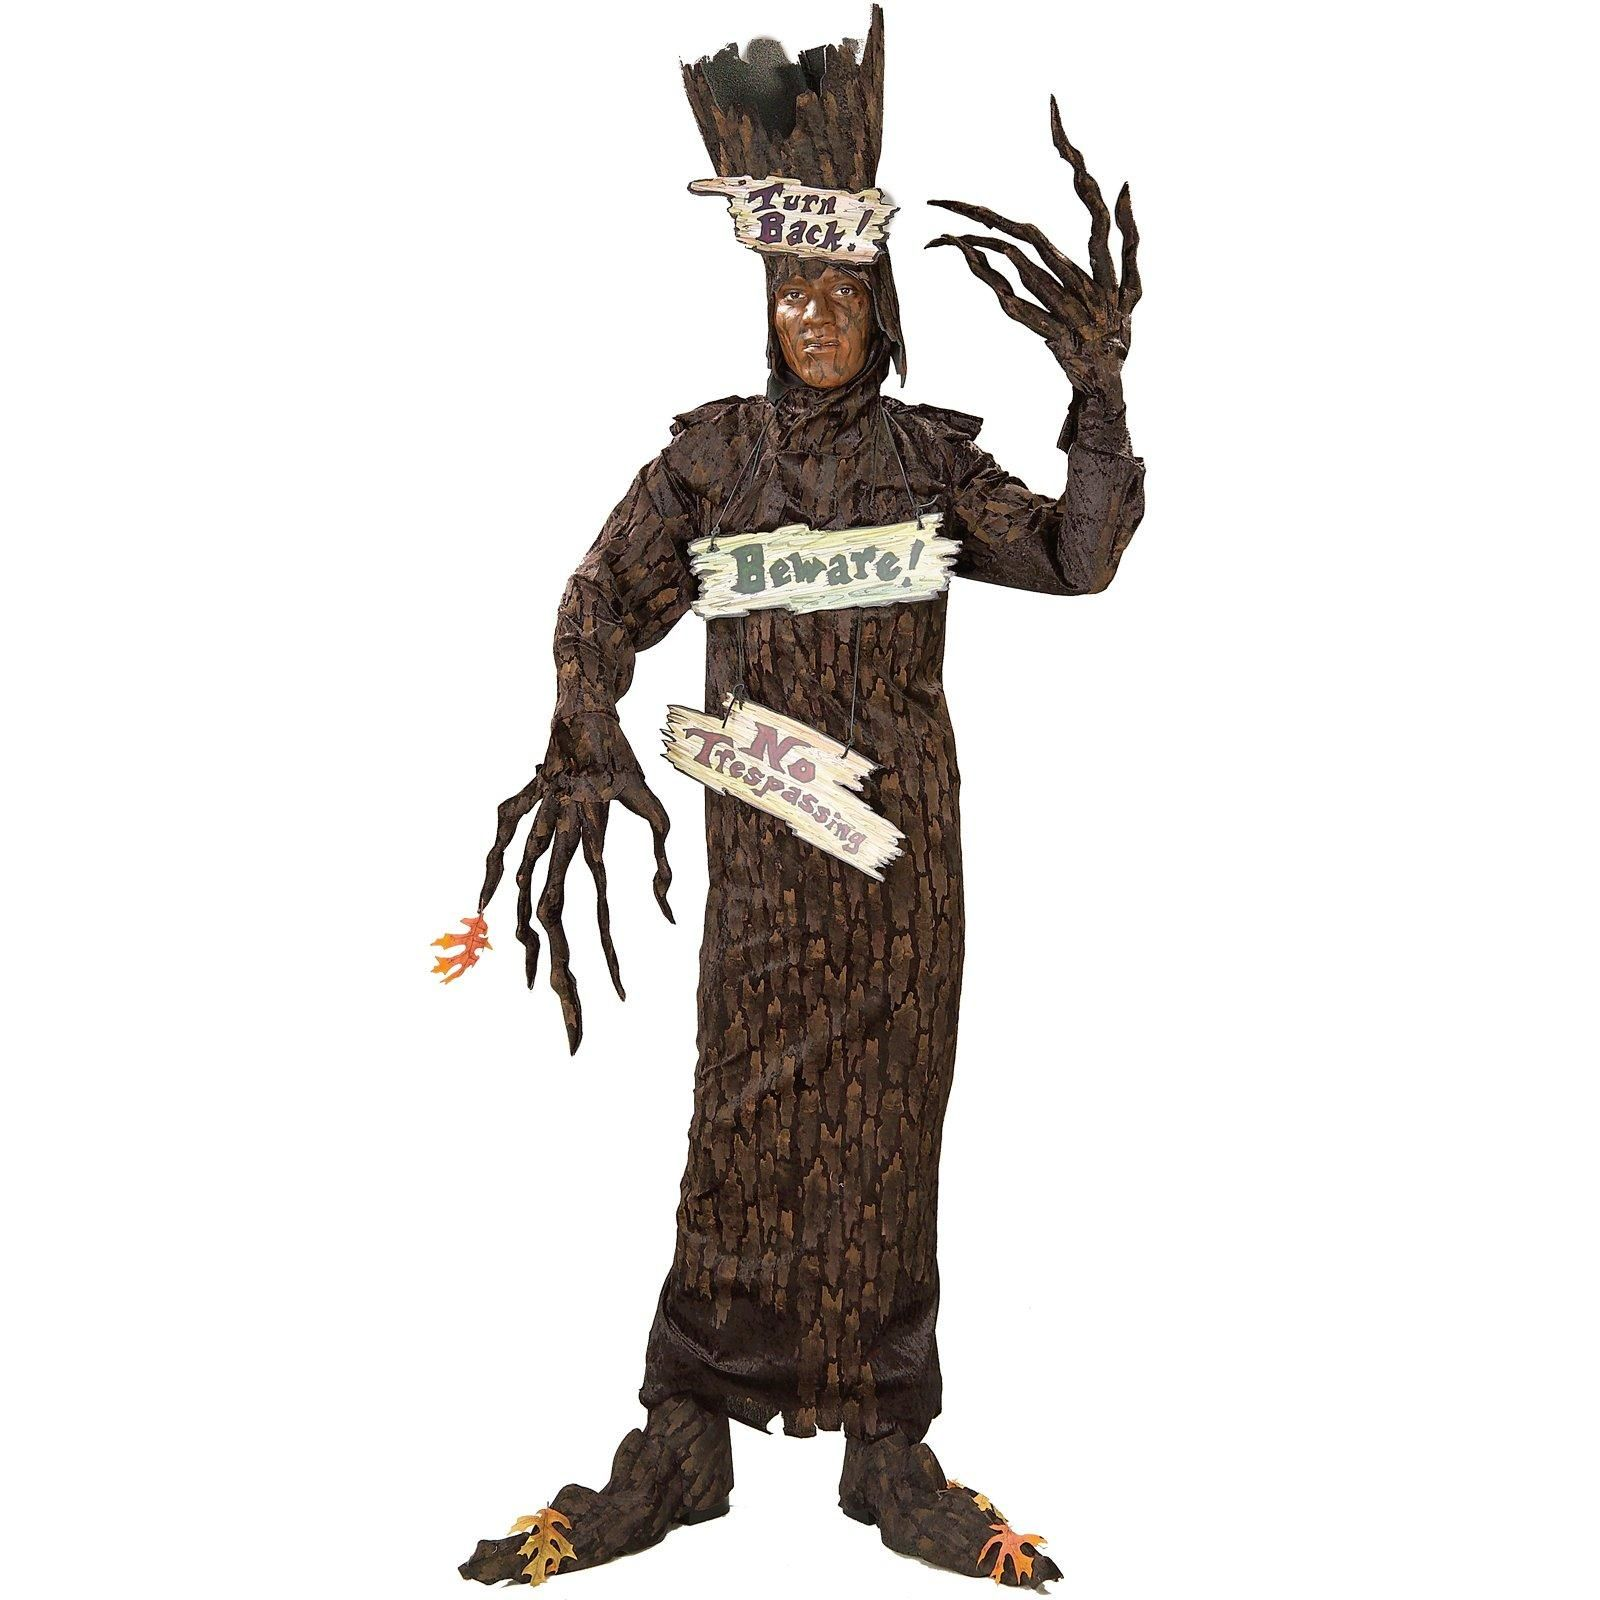 Haunted tree adult costume costumes haunted tree adult costume from buycostumes solutioingenieria Choice Image